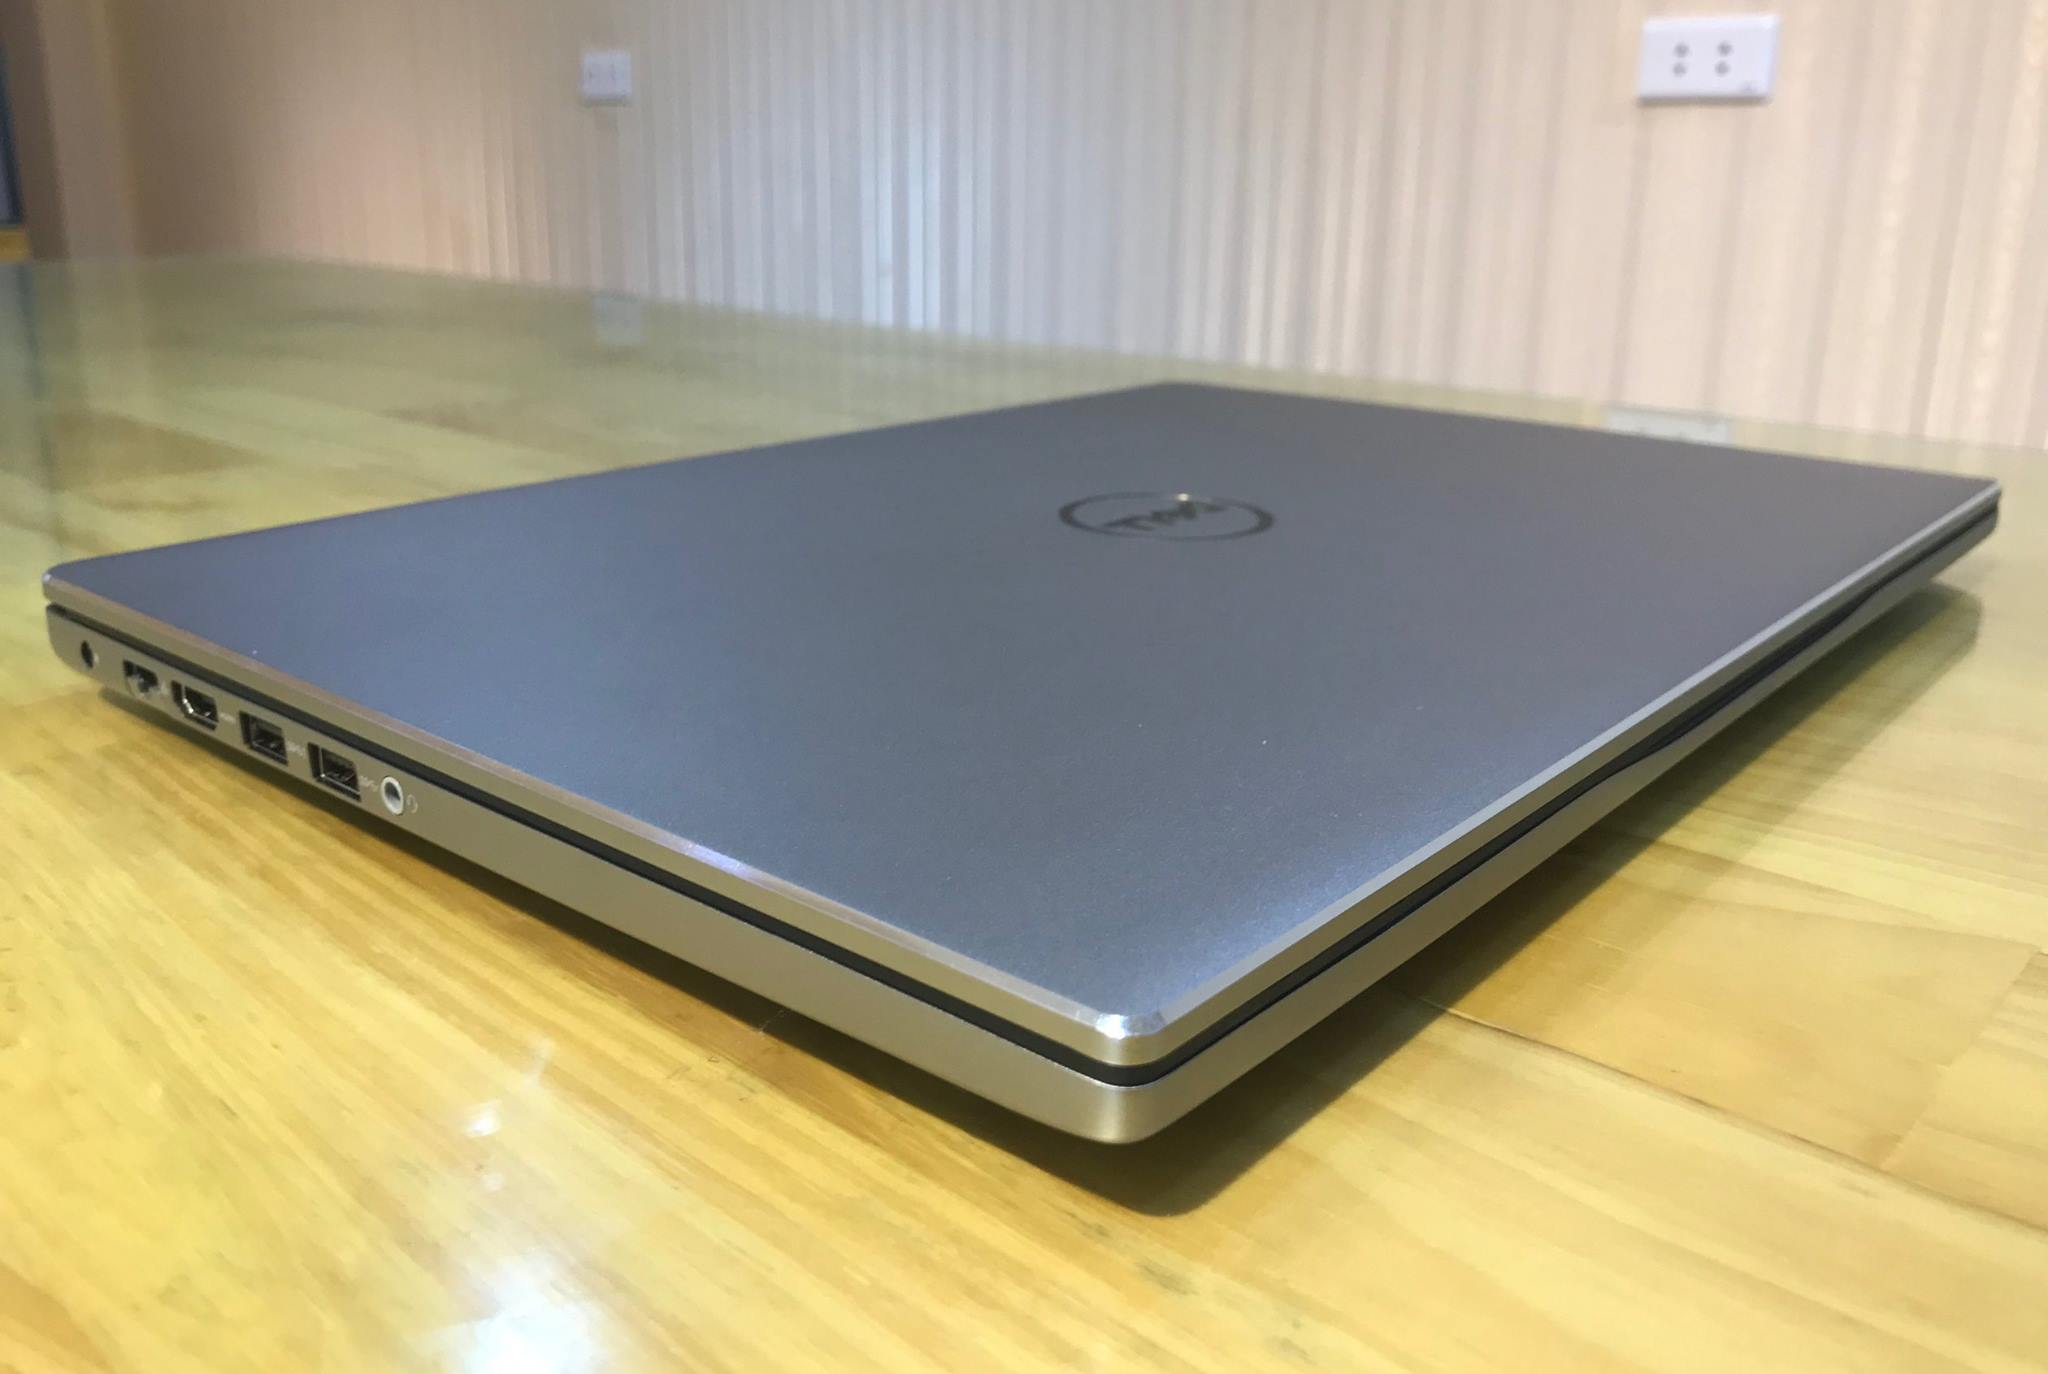 Laptop Dell inspiron 7560-2.jpg